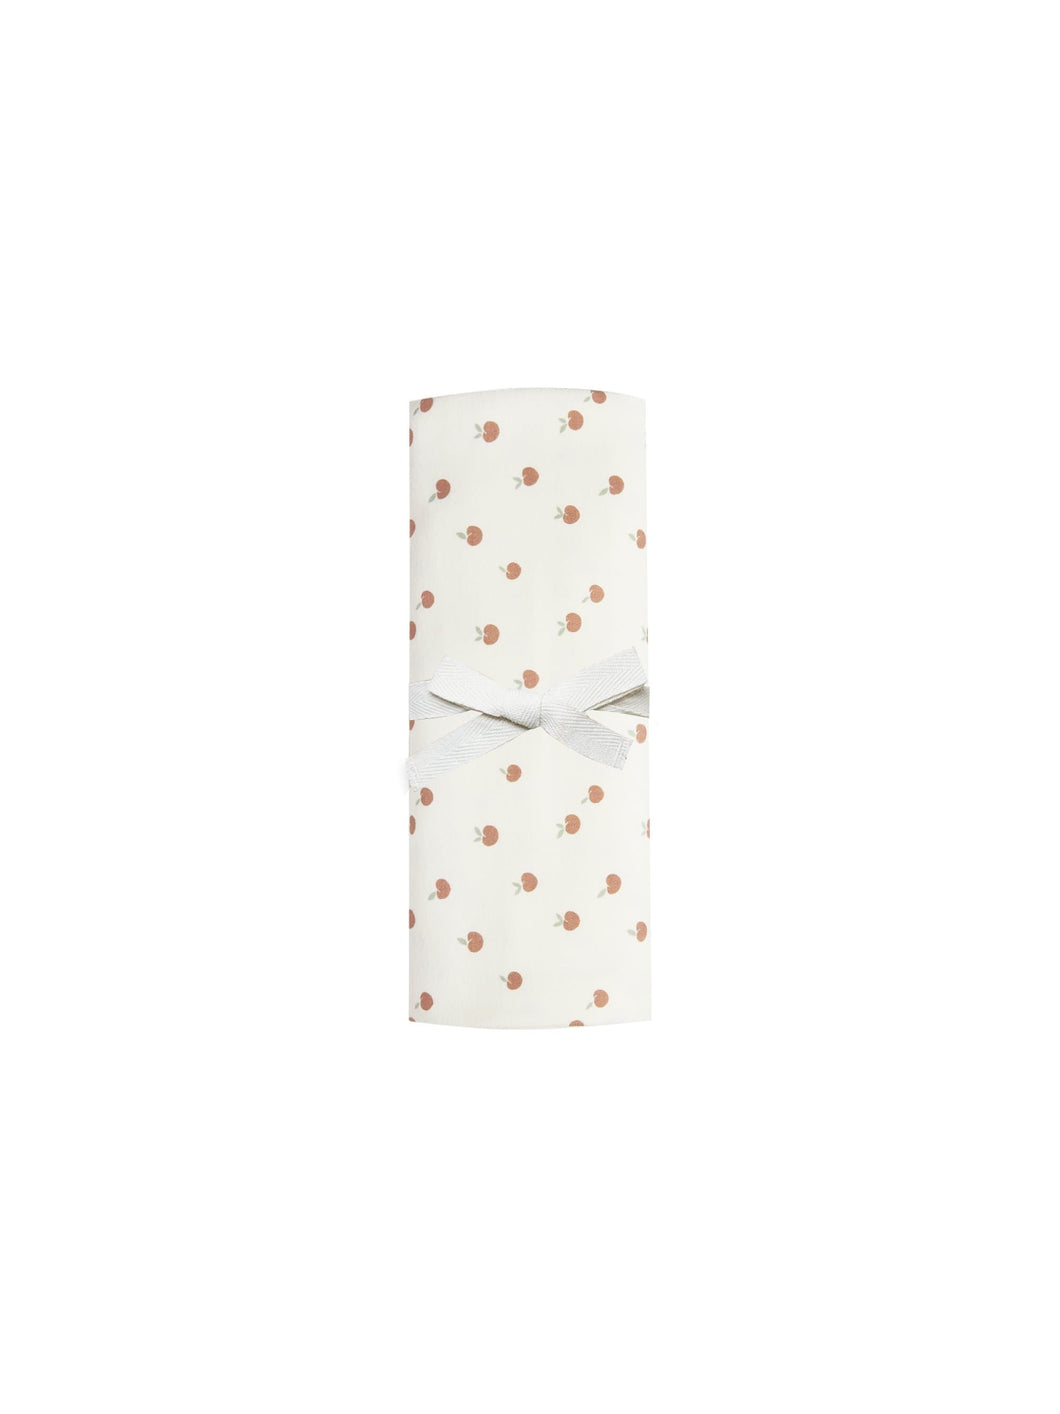 Baby Swaddle in Peach/Ivory - WildLittleFawns